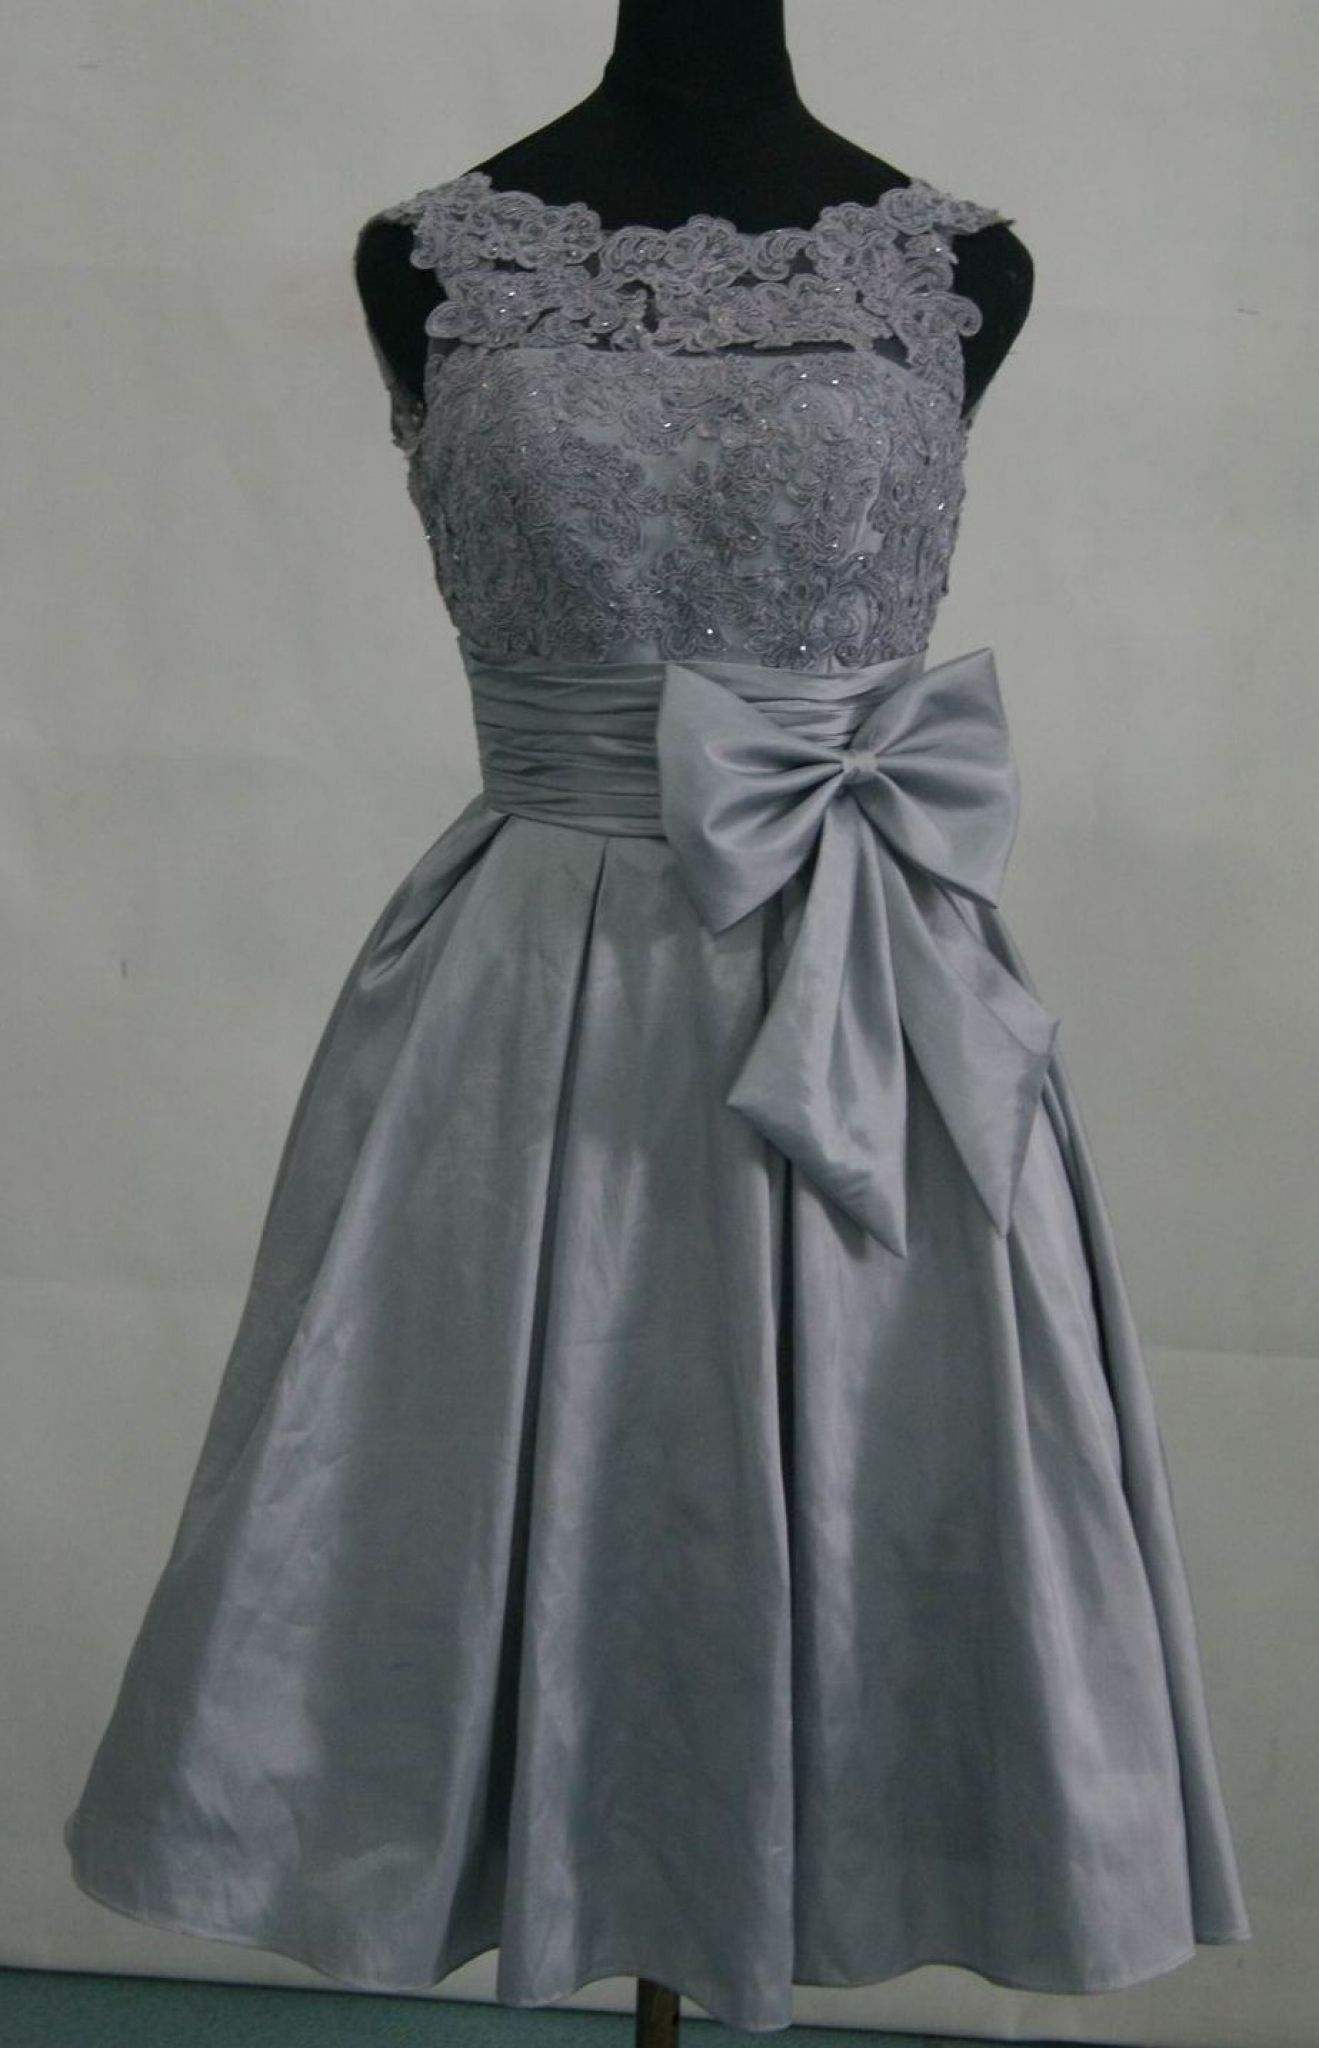 Cheap silver dresses for weddings  silver dresses for a wedding  dressy dresses for weddings Check